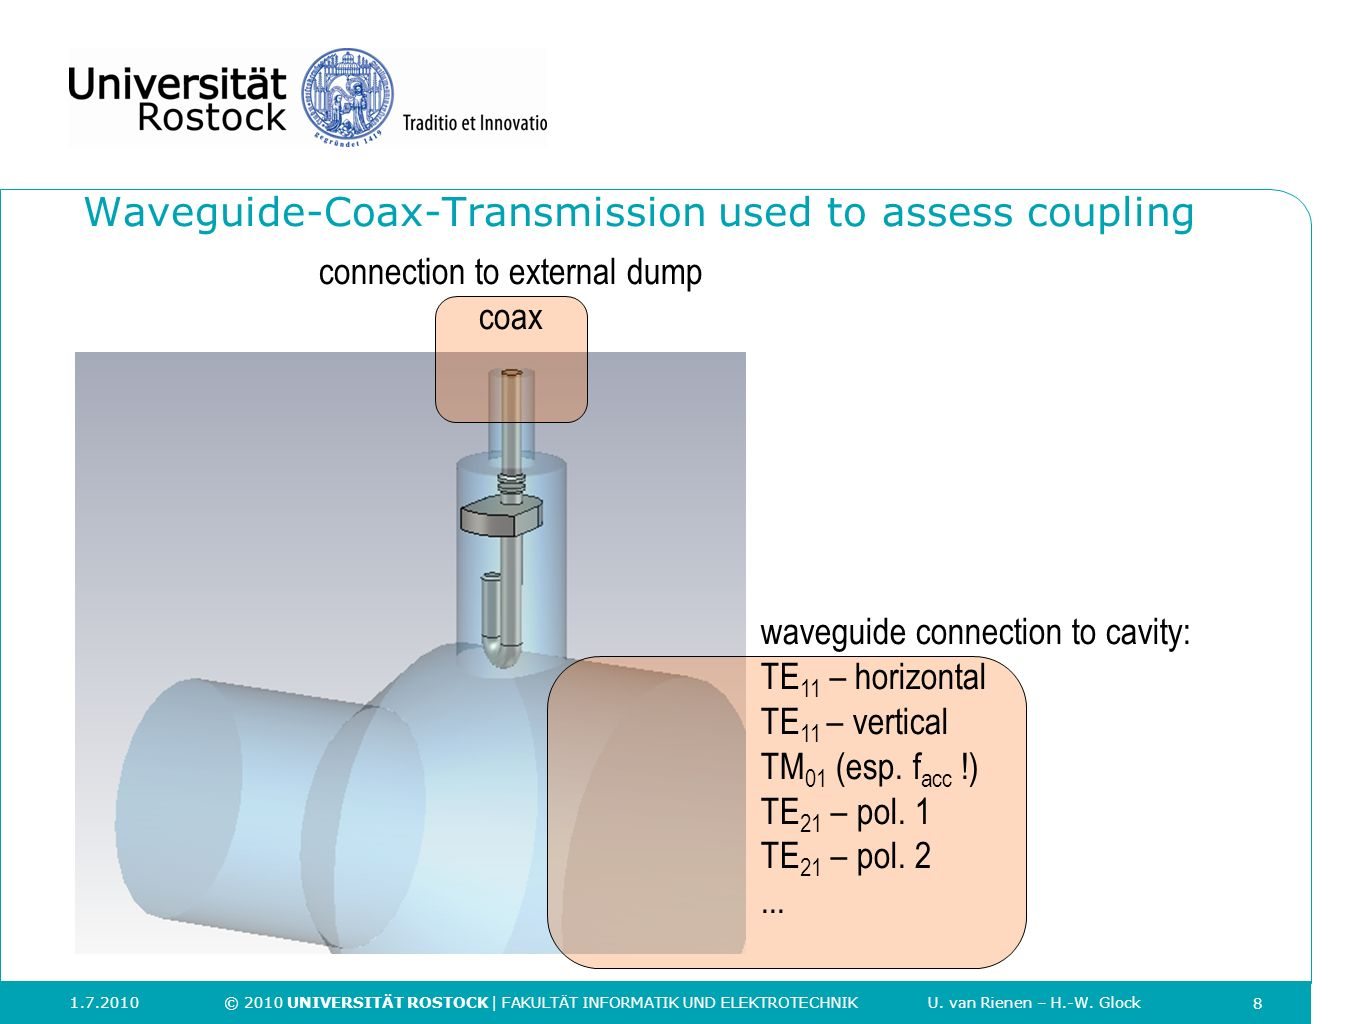 Waveguide-Coax-Transmission used to assess coupling